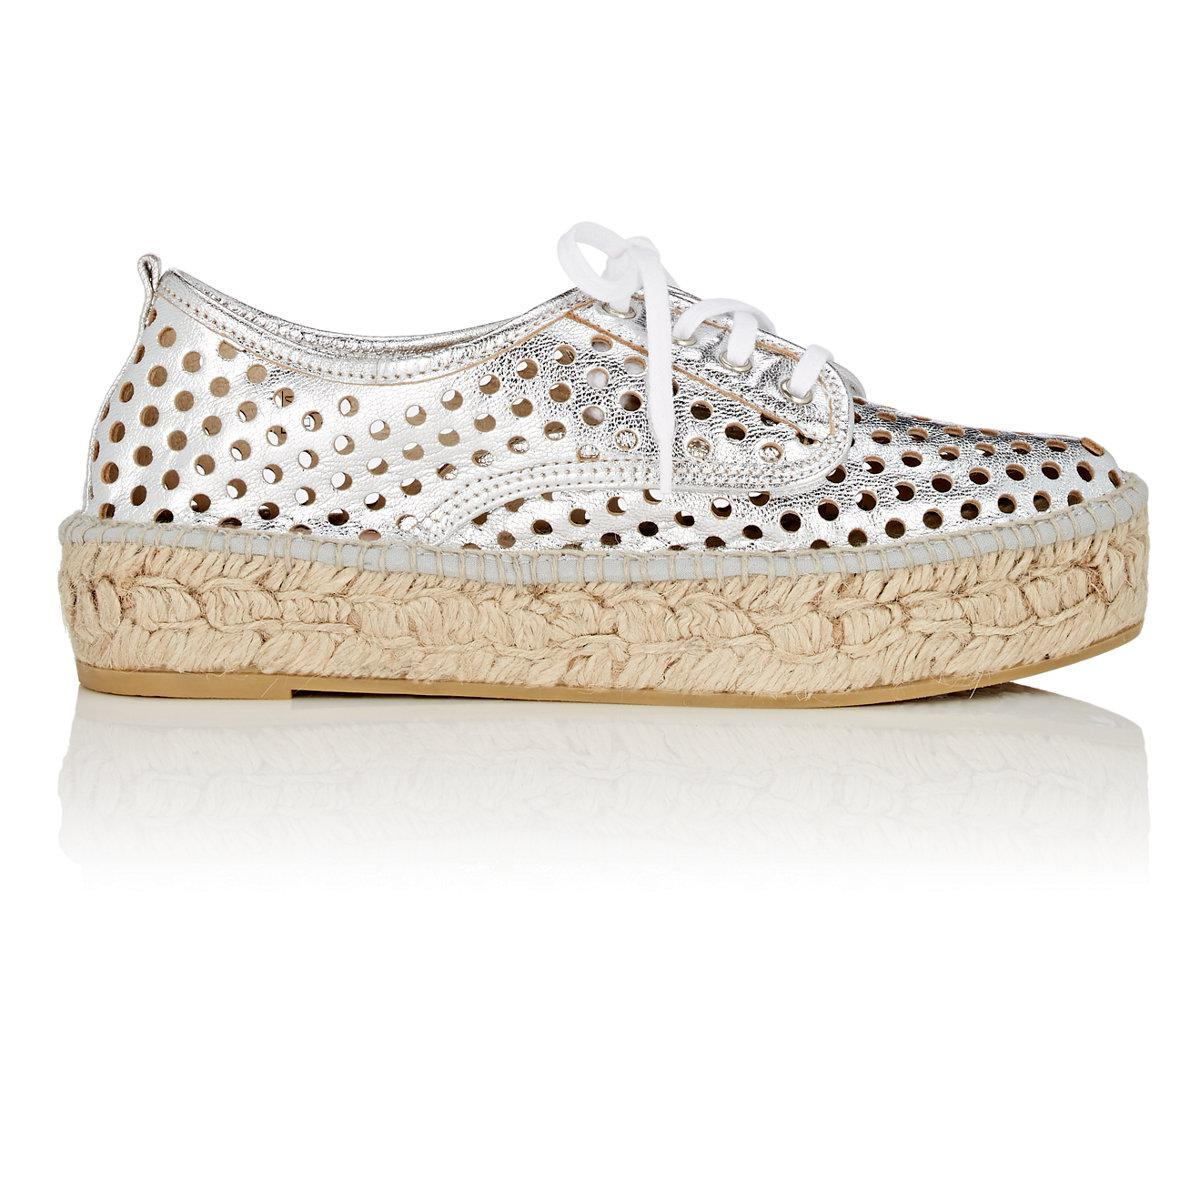 bf36f8860b2e Lyst - Loeffler Randall Alfie Perforated Leather Espadrille Sneakers ...